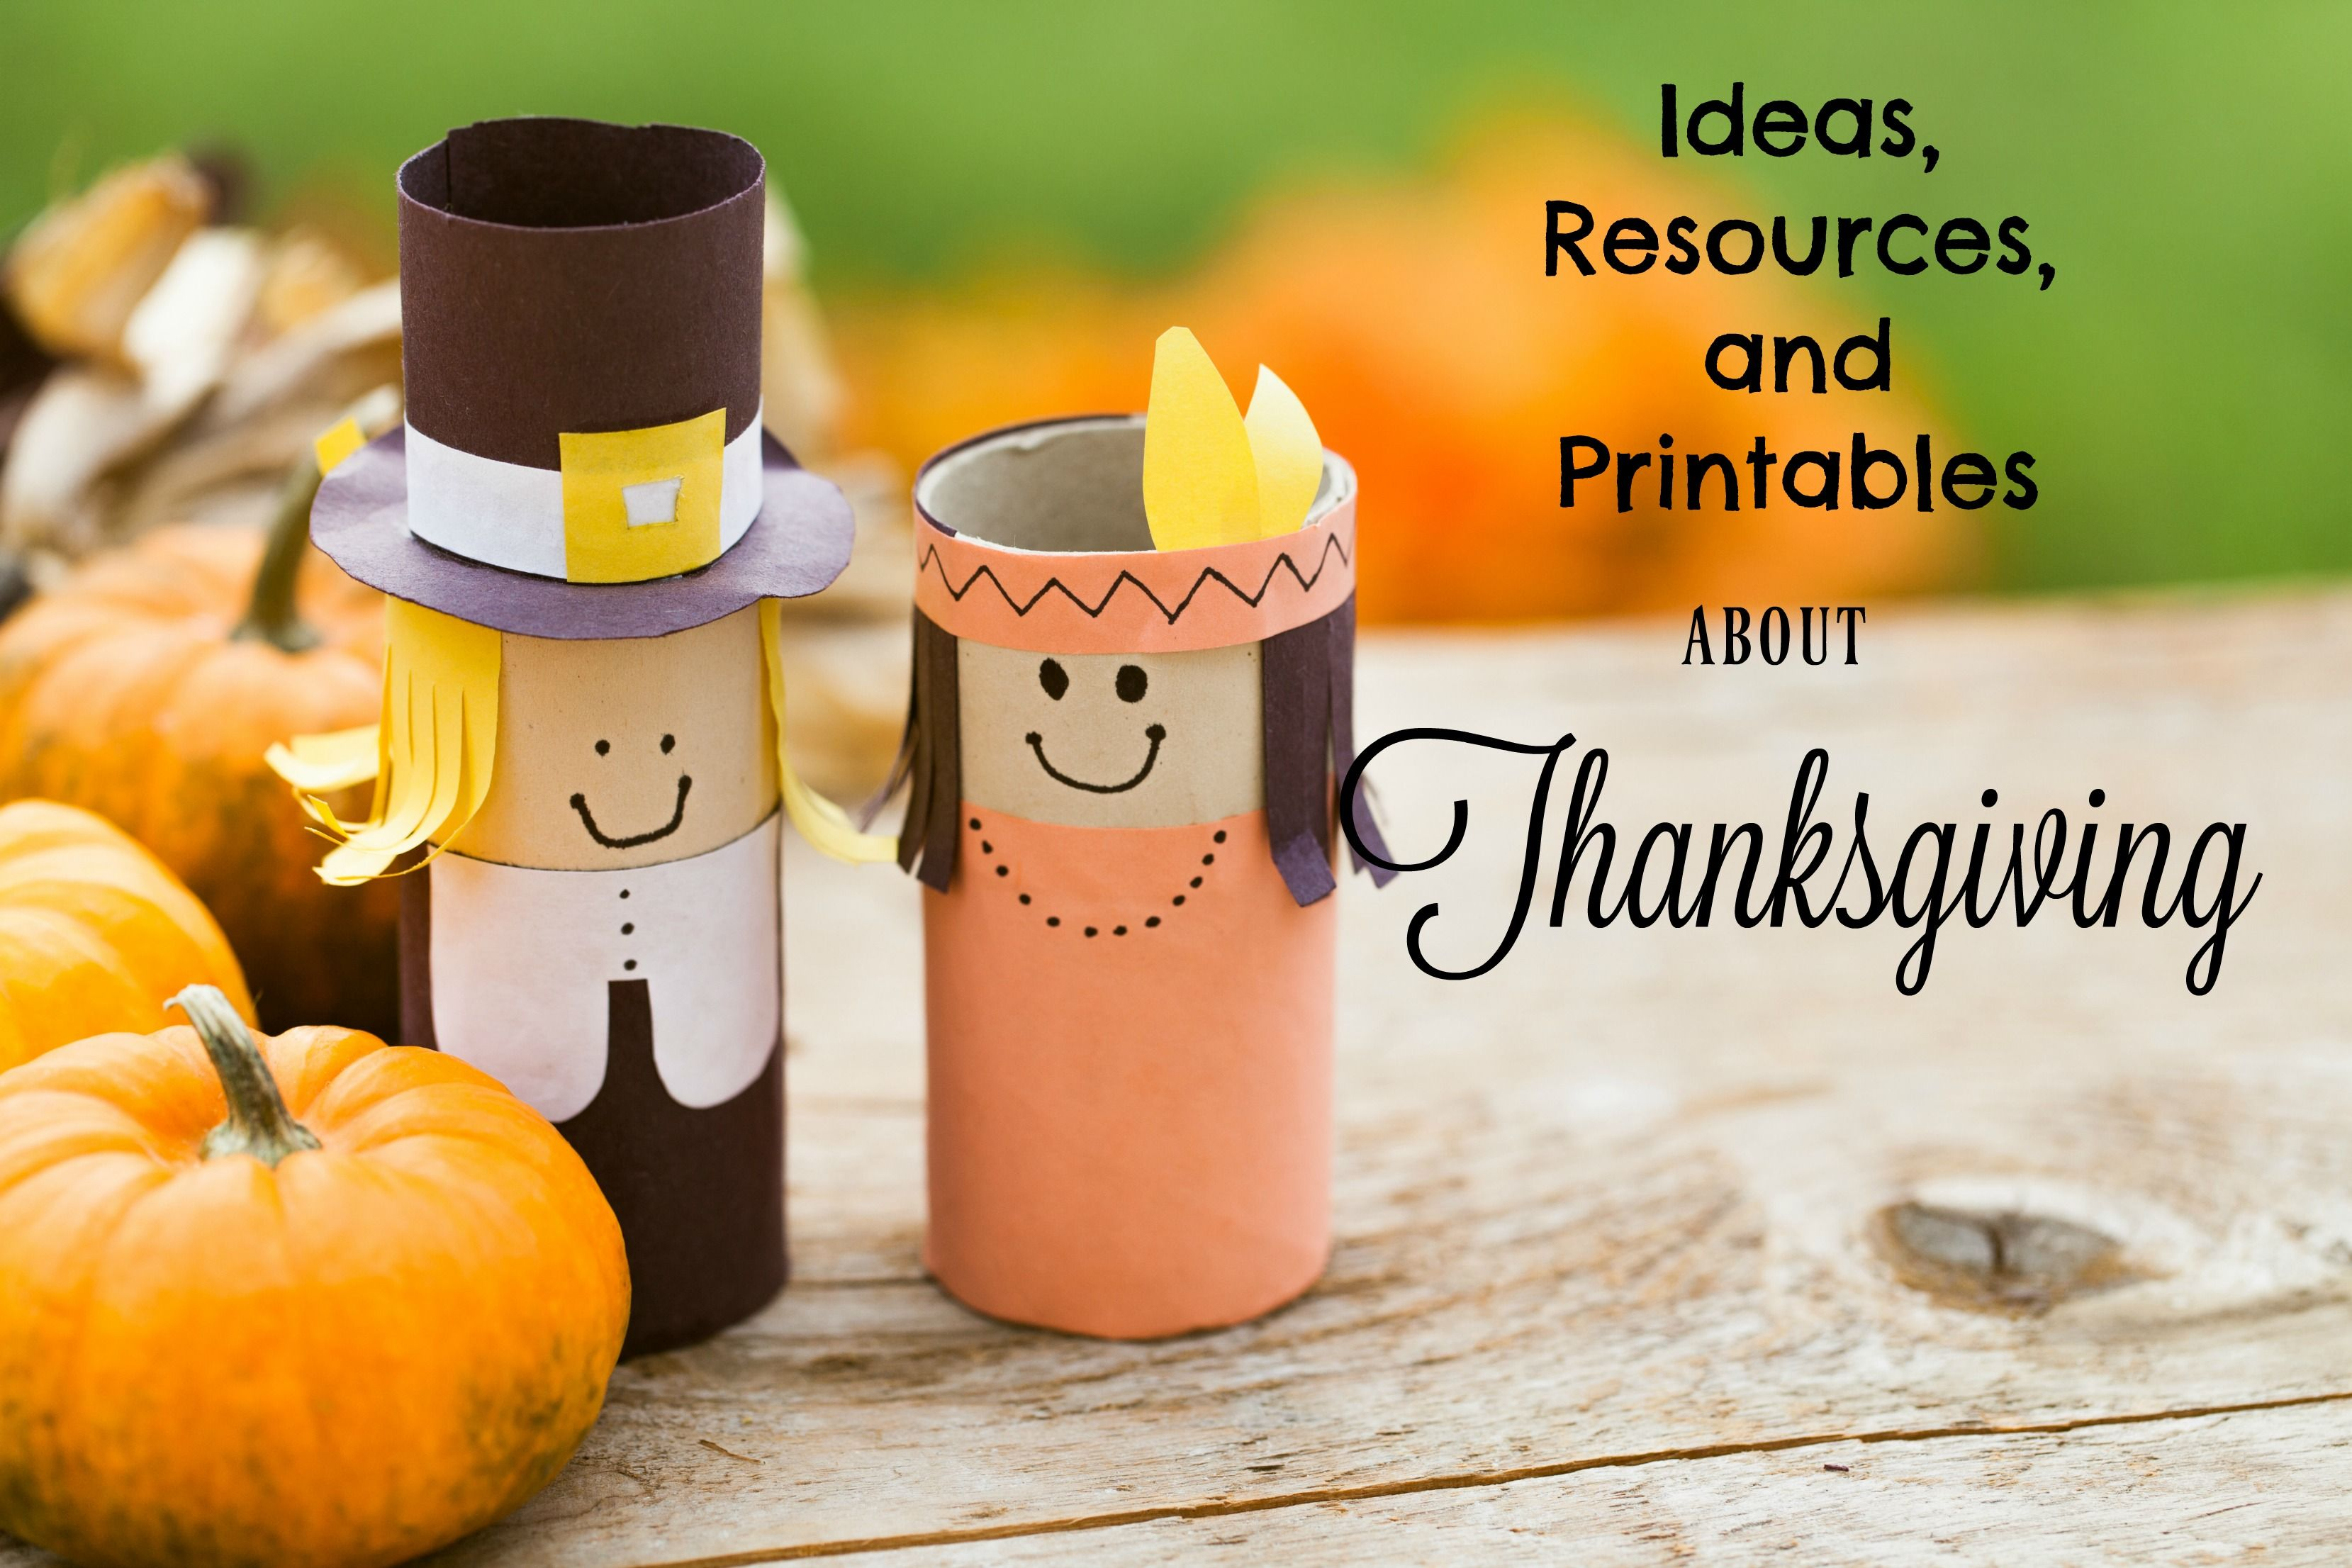 Ideas Resources And Printables About Thanksgiving